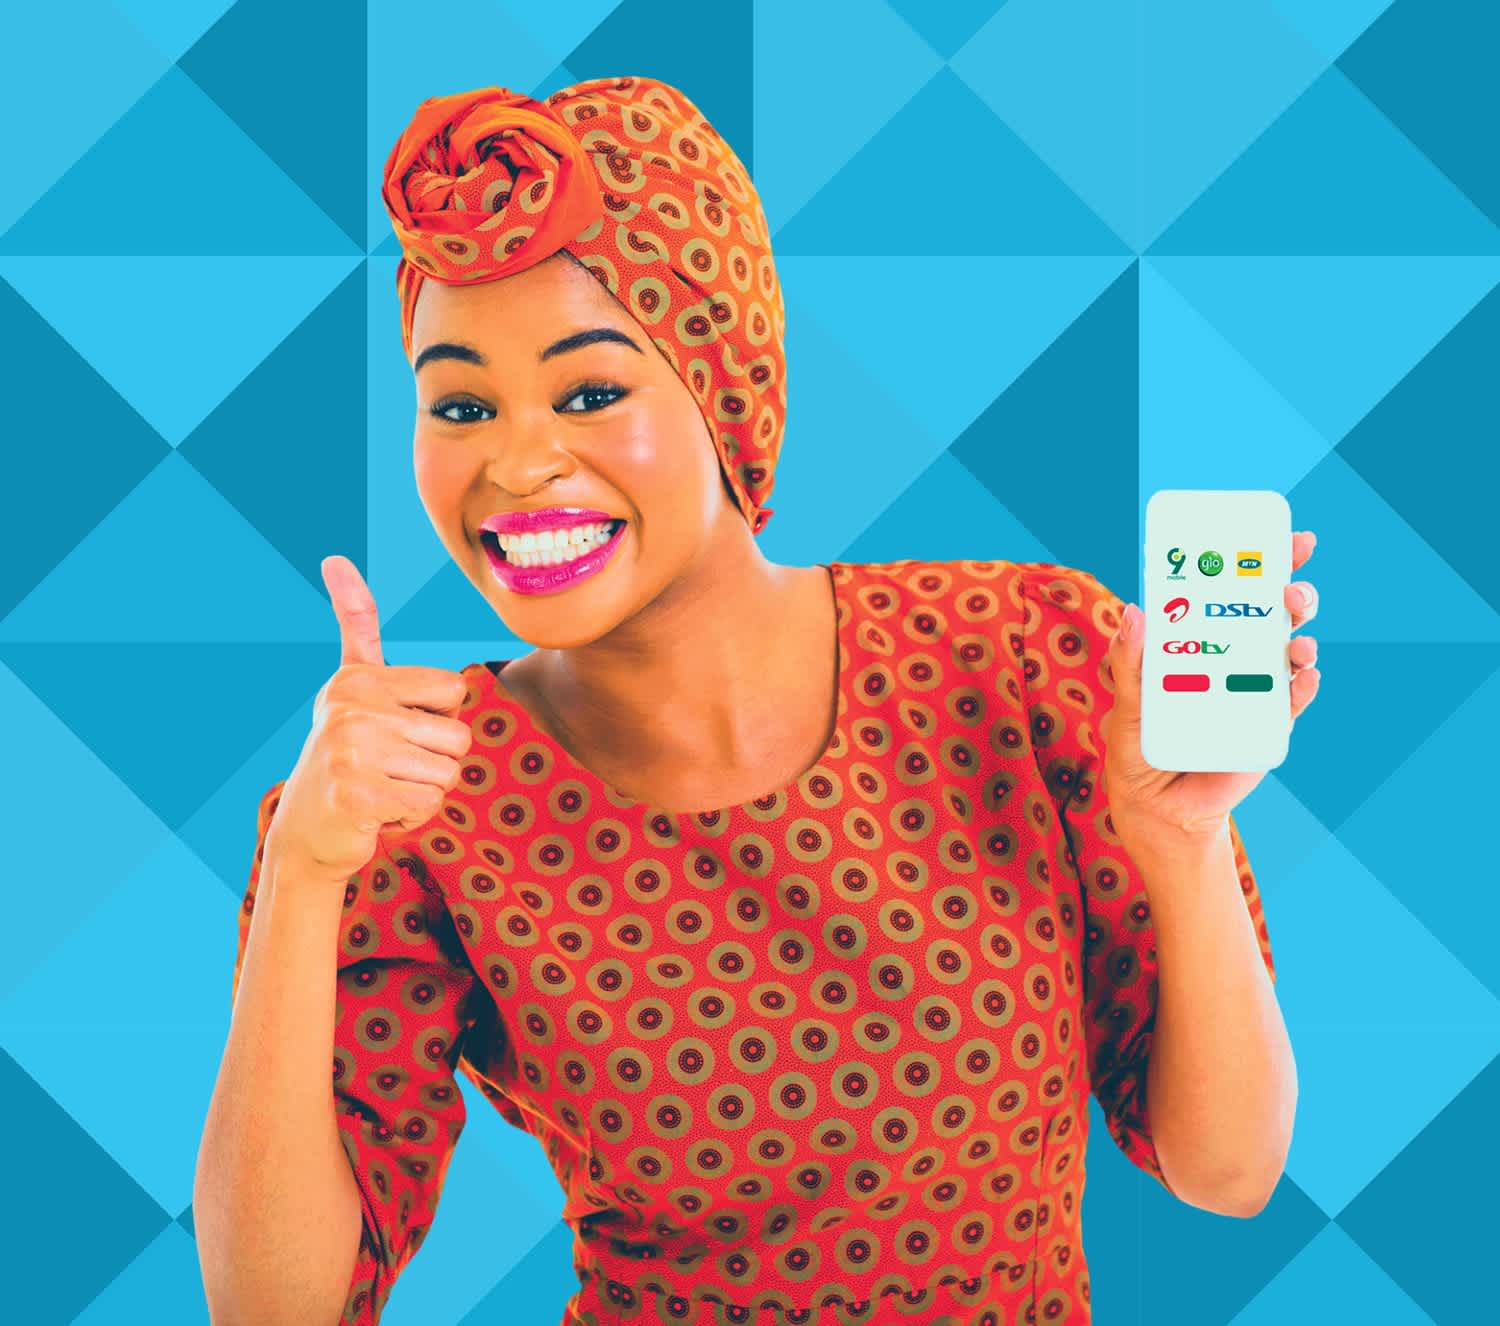 New Data Plans And Value for MTN